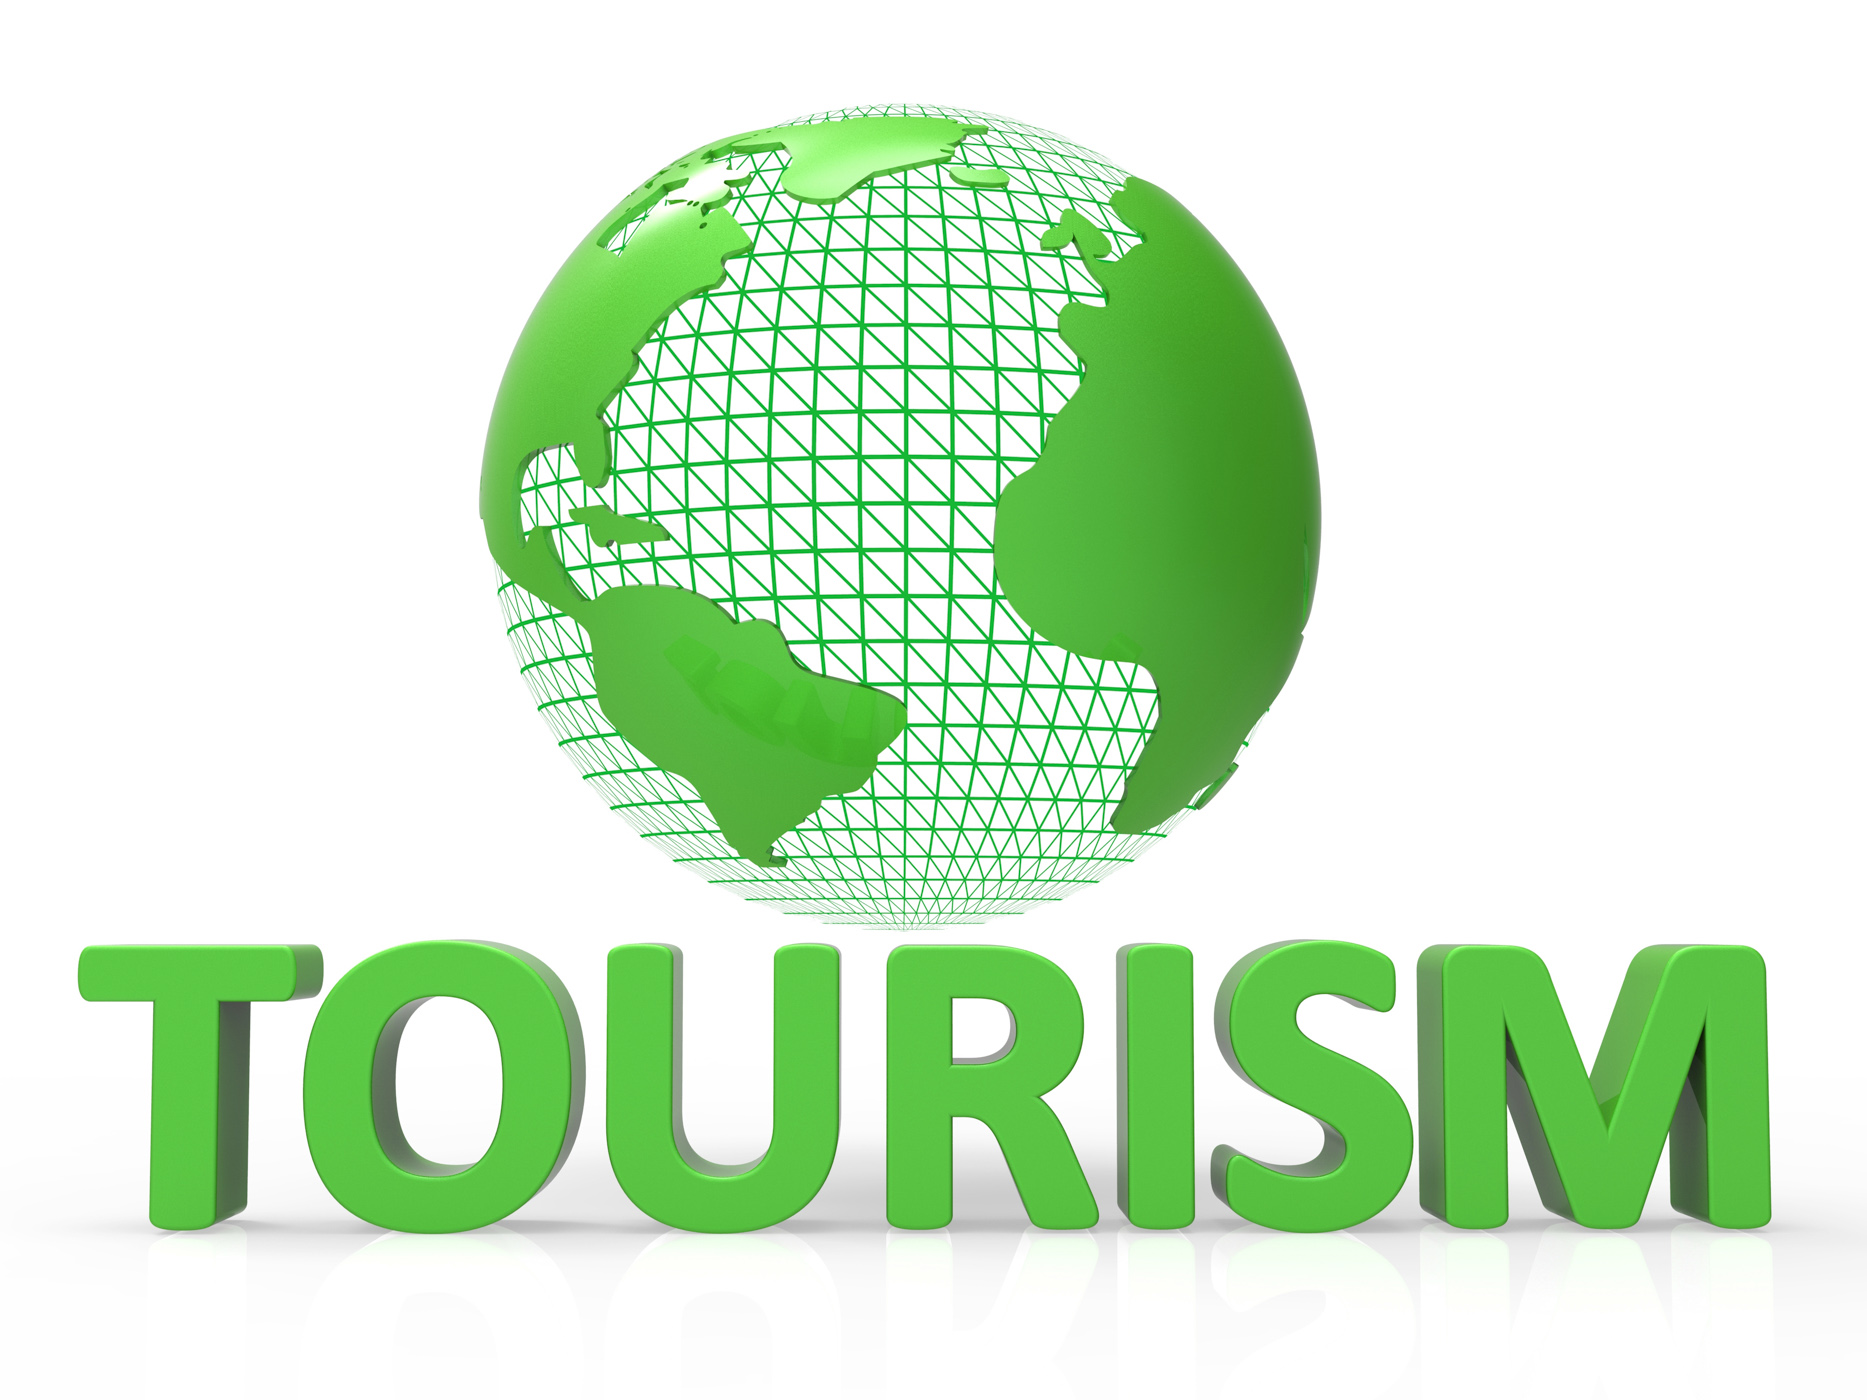 Globe Tourism Means Globalise Travel And Worldly, Travel, Worldly, World, Voyages, HQ Photo